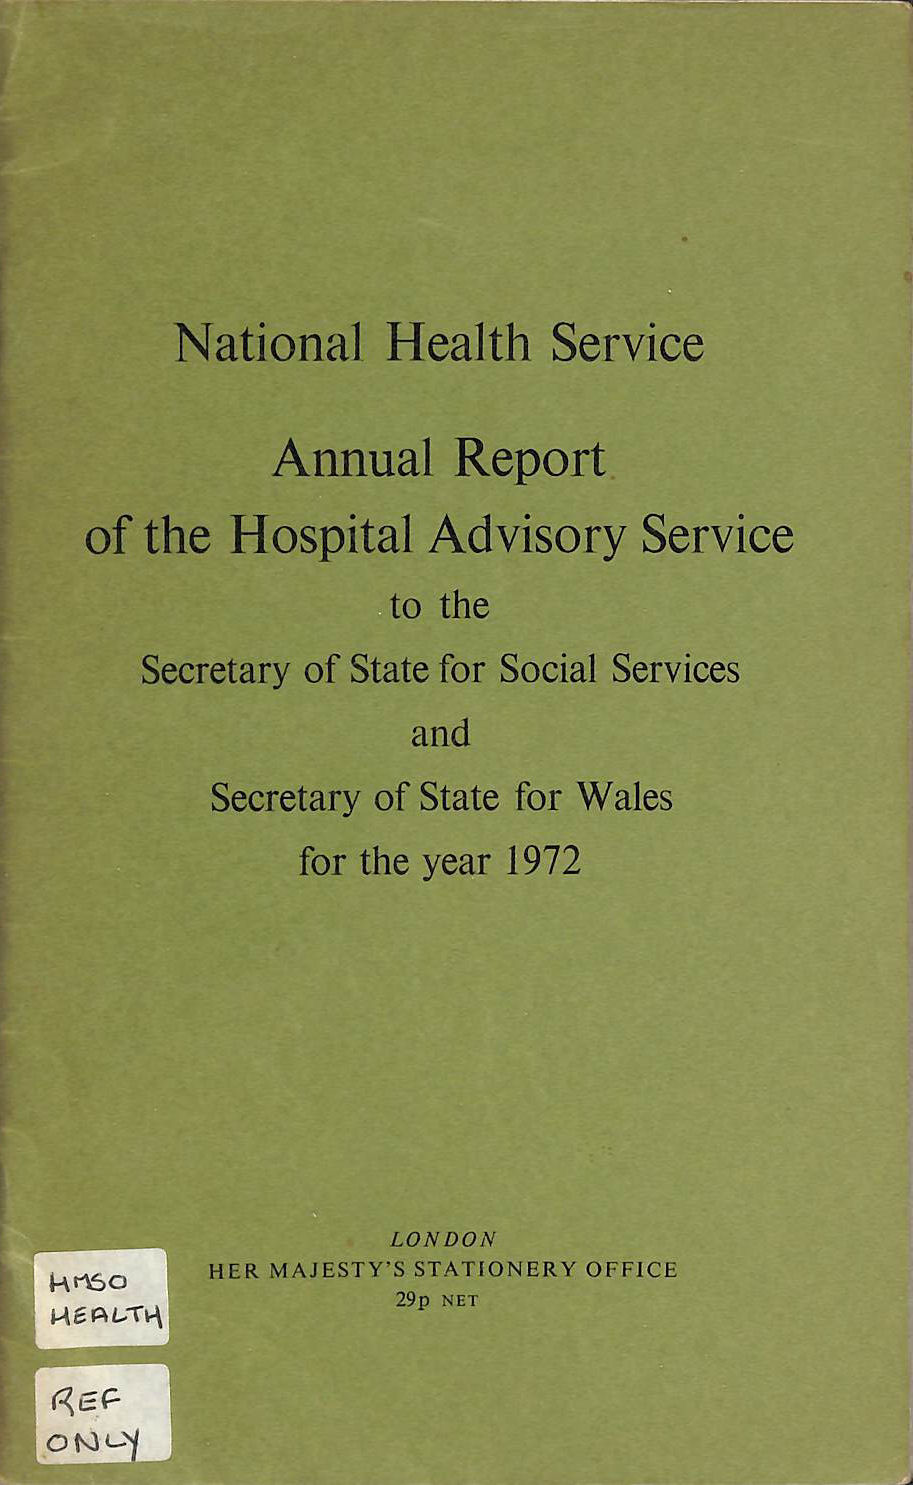 Image for Annual Report of the Hospital Advisory Service to the Secretary of State for Social Services and Secretary of State for Wales for the year 1972